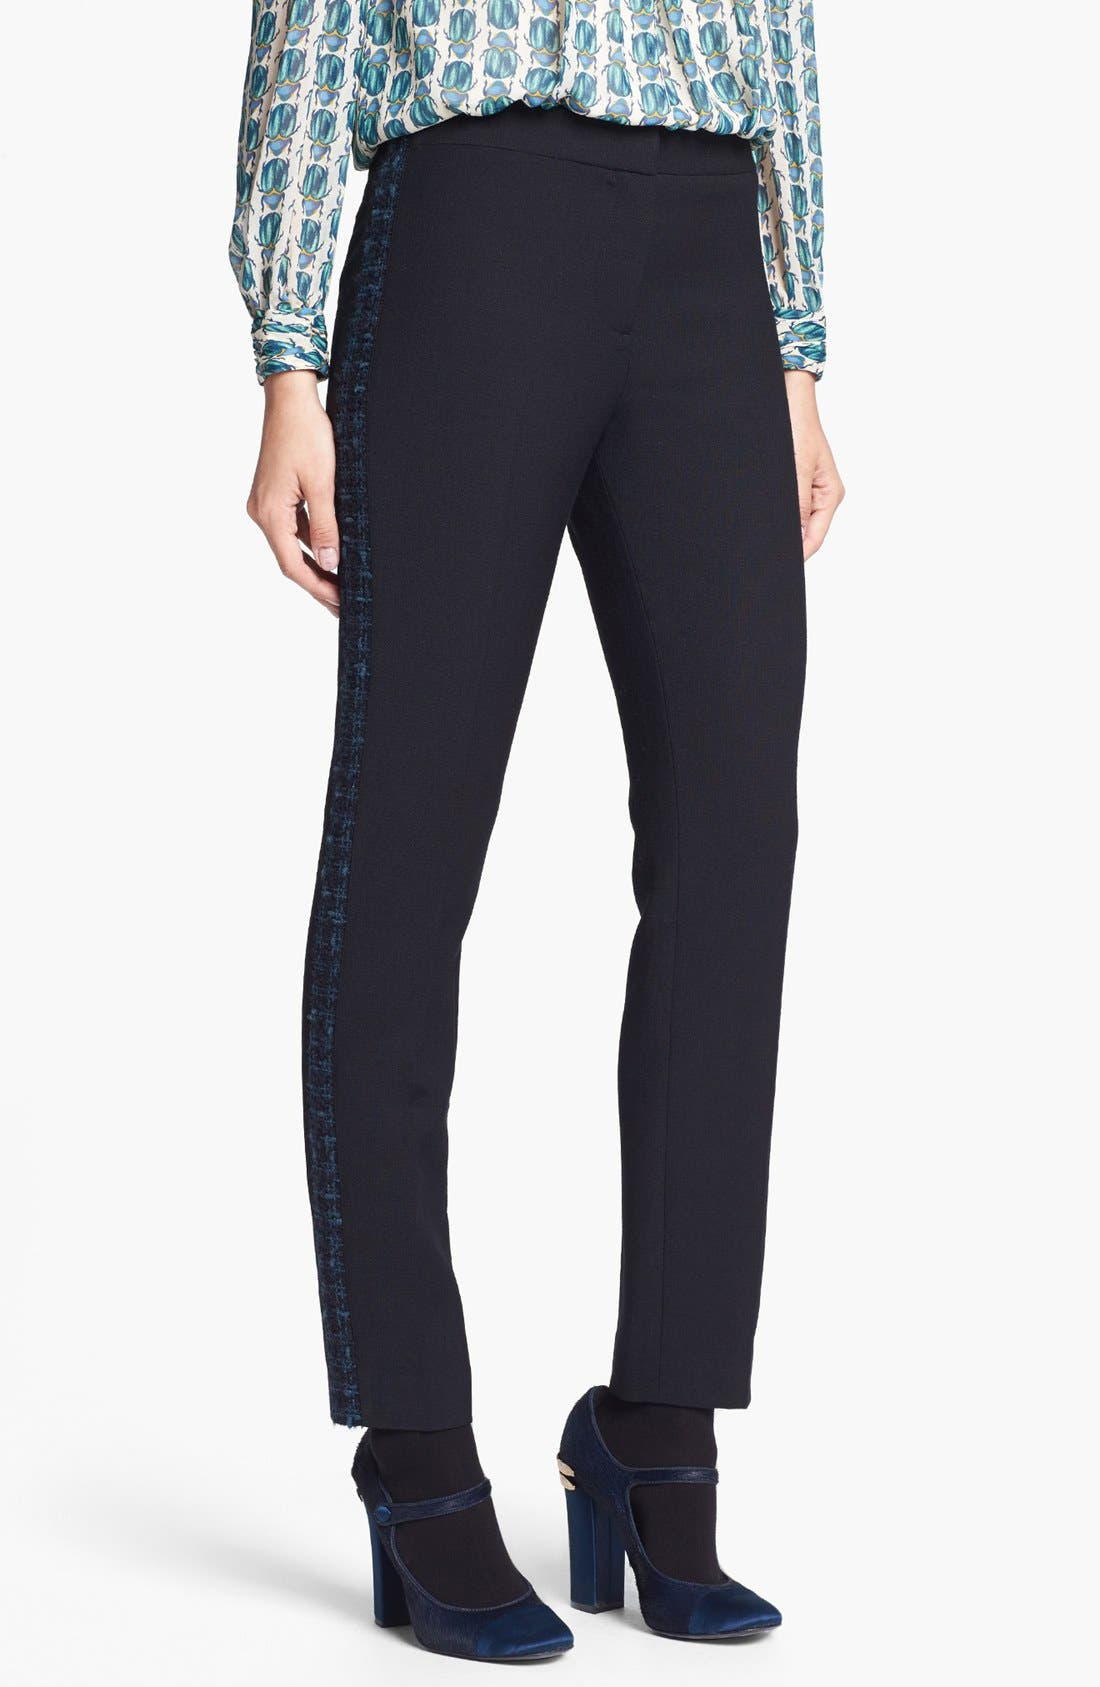 Main Image - Tory Burch 'Tobie' Stretch Tuxedo Pants